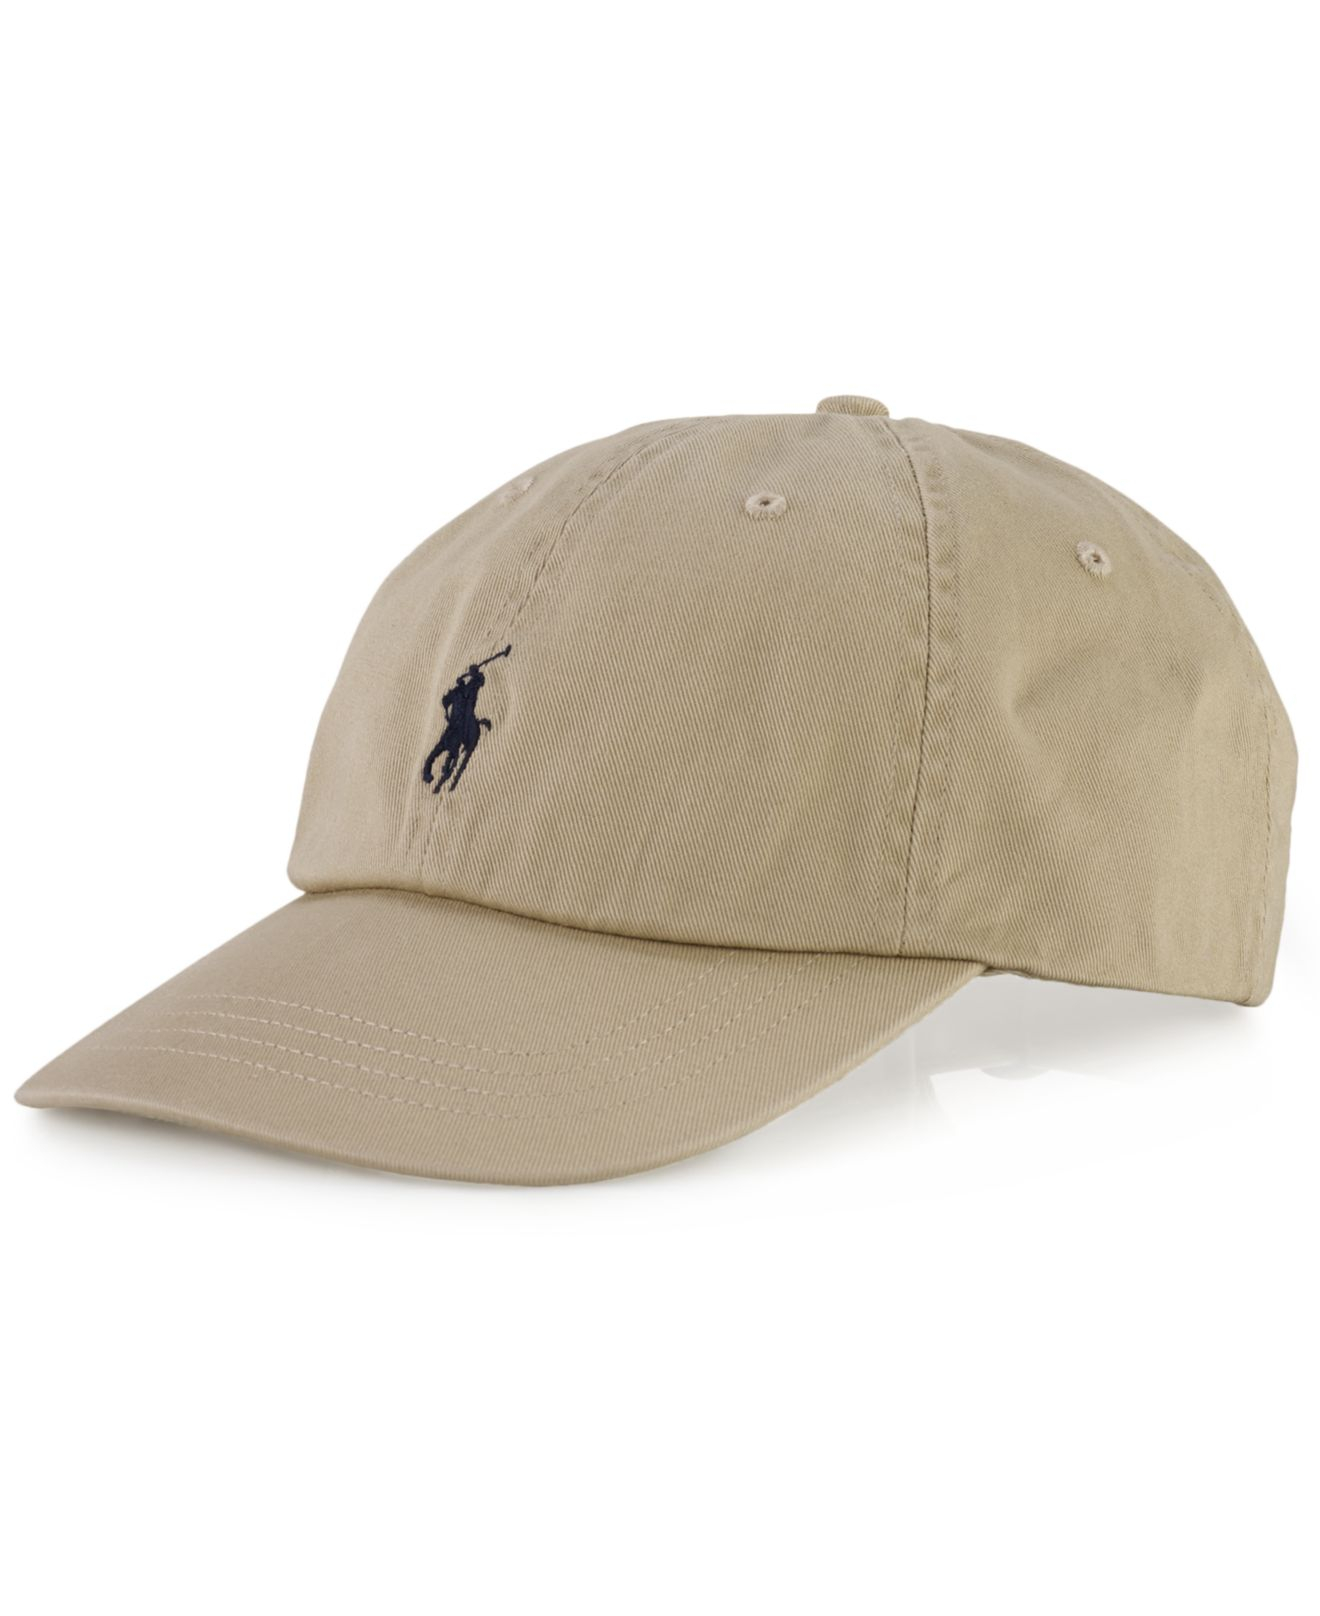 polo ralph lauren core classic sport cap in beige for men nubuck. Black Bedroom Furniture Sets. Home Design Ideas